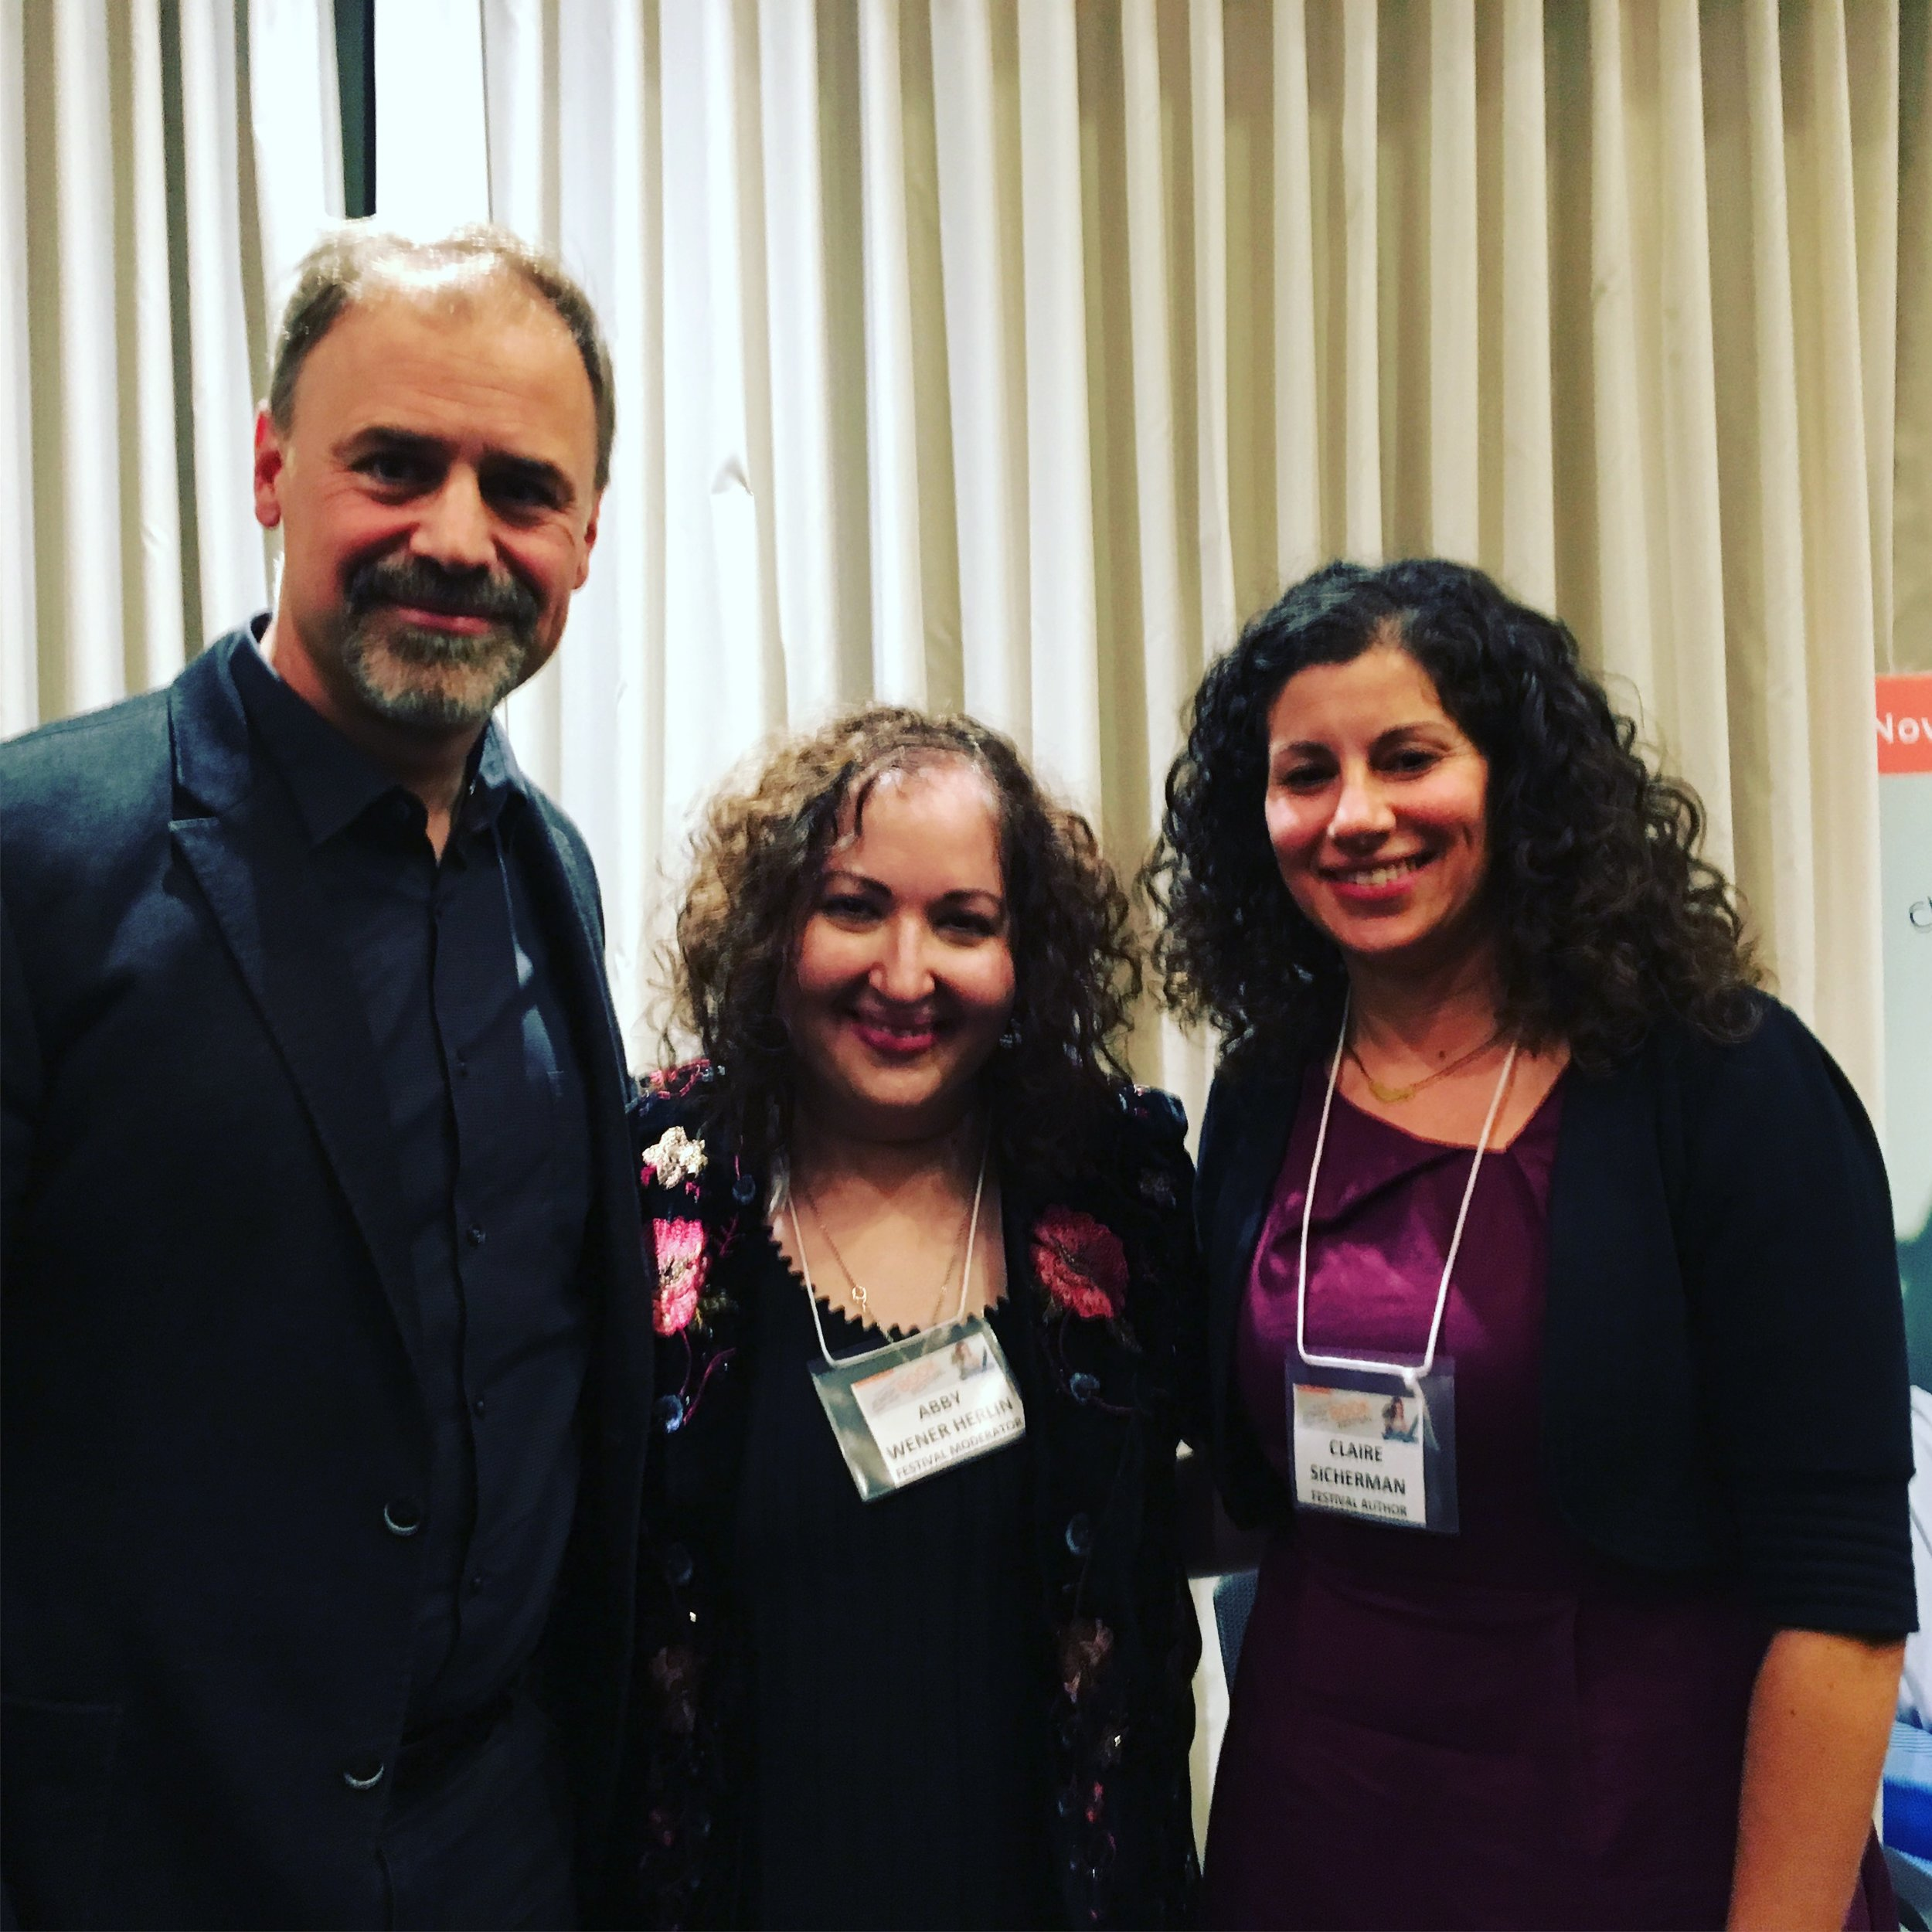 Cherie Smith JCC Jewish Book Festival 2017 - Panel on Intergenerational Trauma (from left to right): Dr. Roger Frie, Dr. Abby Wener Herlin, and Claire Sicherman.